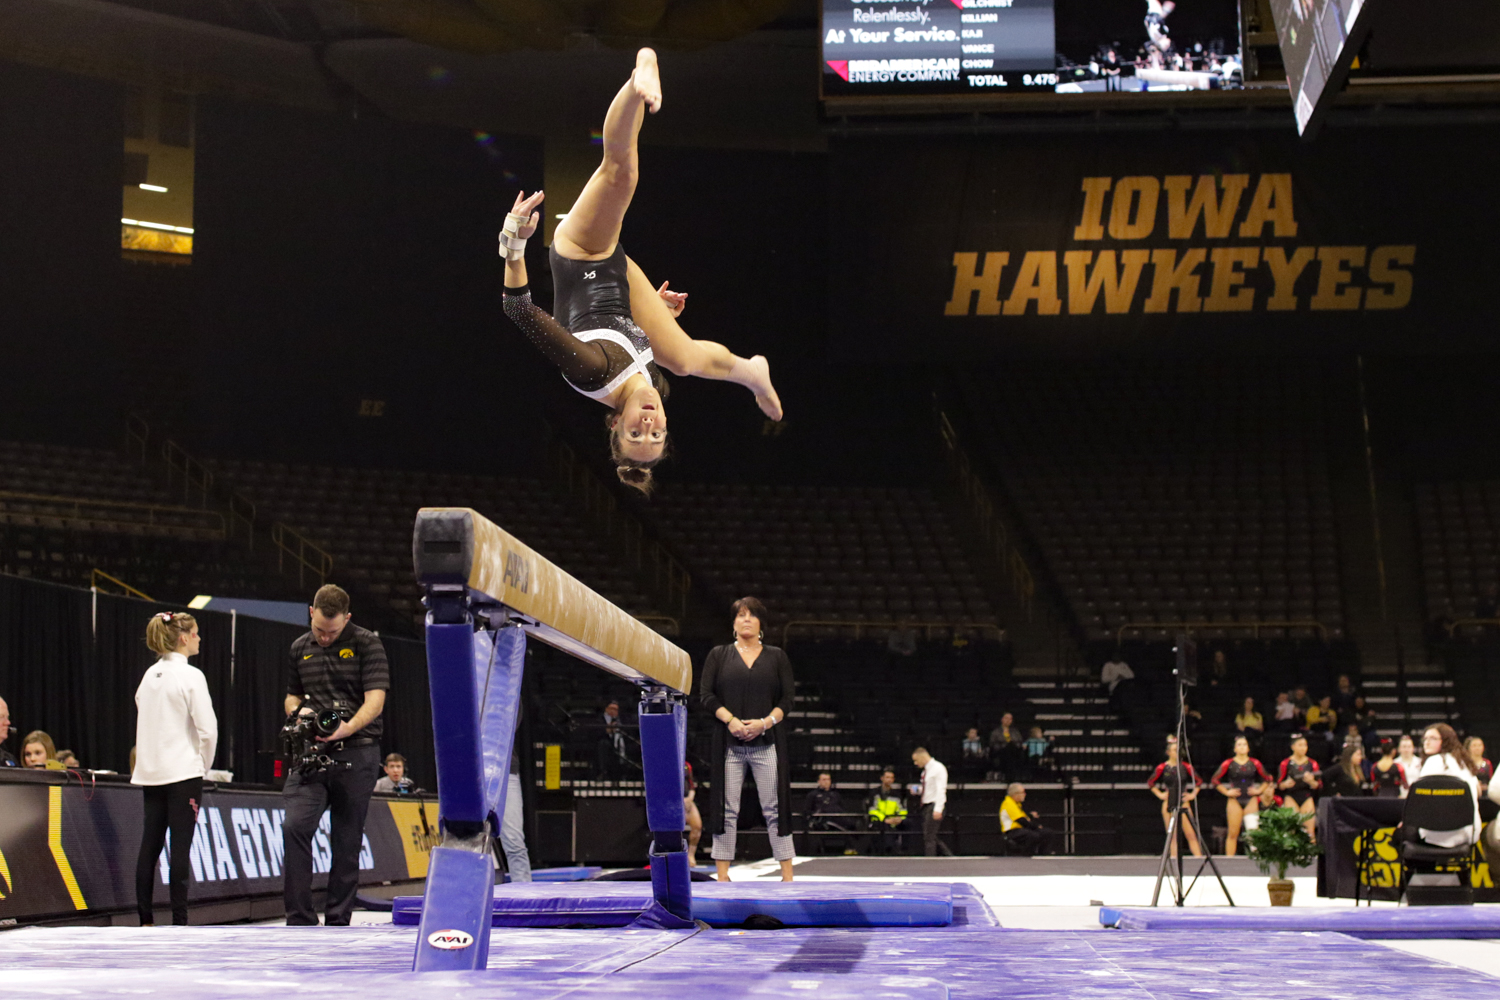 Iowa+Gymnast+Allie+Gilchrist+performs+on+the+balance+beam+during+a+gymnastics+meet+against+Rutgers+on+Saturday%2C+Jan.+26%2C+2019.+The+Hawkeyes+defeated+the+Scarlet+Knights+194.575+to+191.675.+